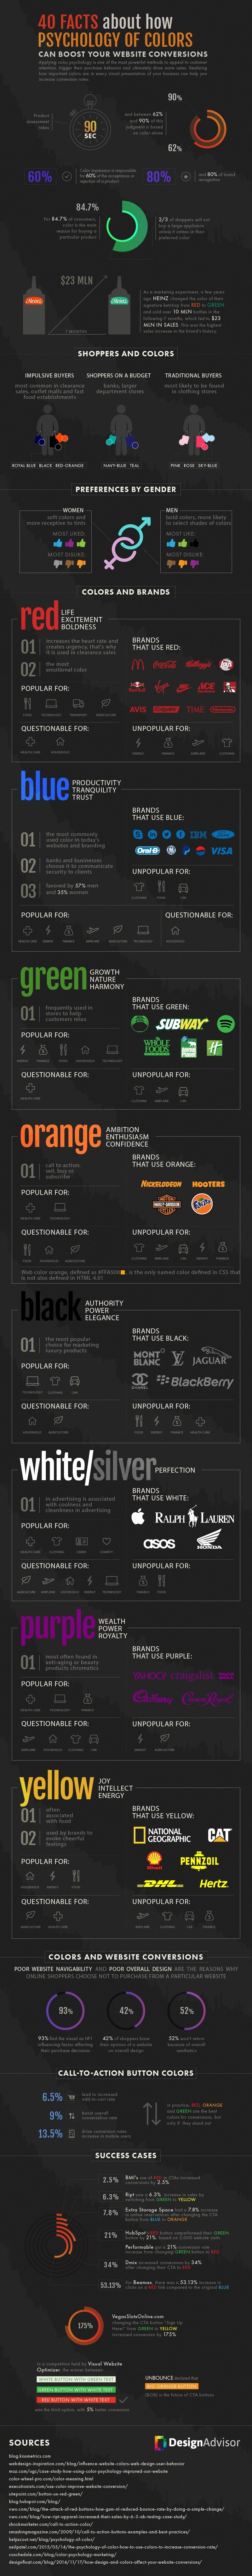 40 Facts About How Psychology of Color Can Boost Your Website Conversion - Infographic